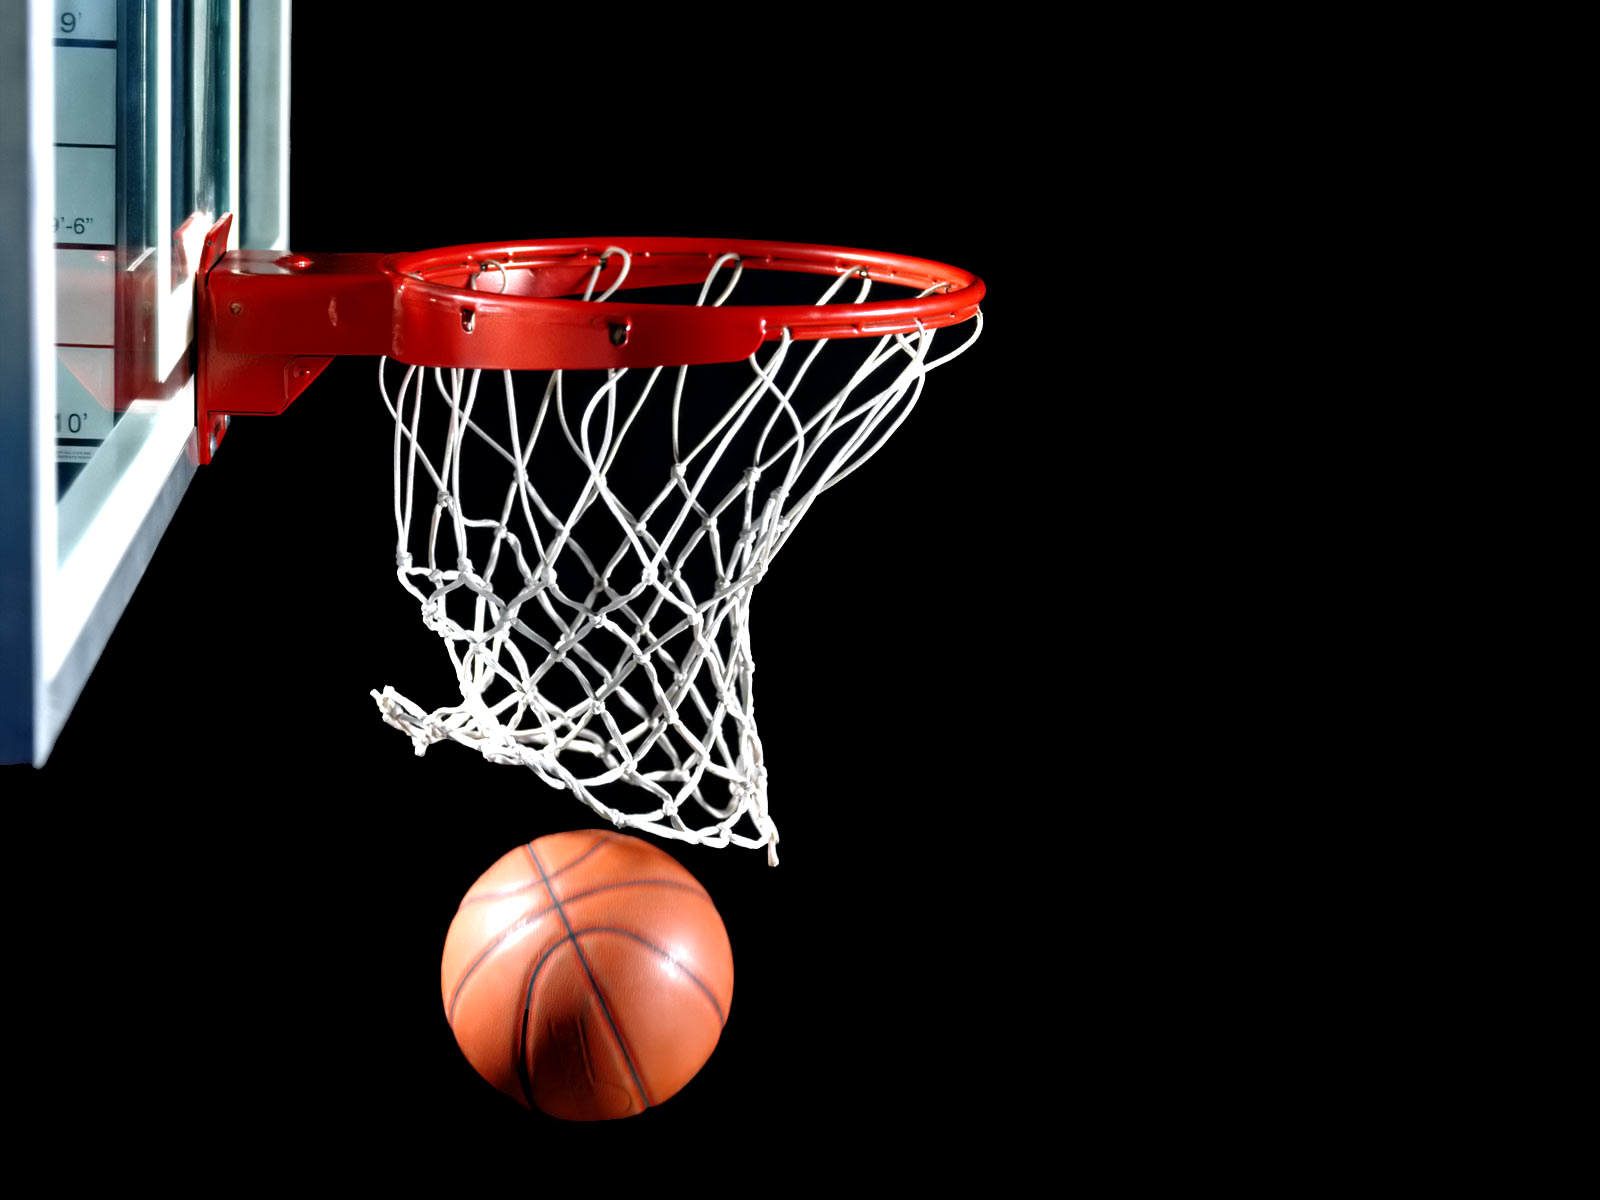 Basketball Sports Wallpapers   HD Backgrounds 1600x1200